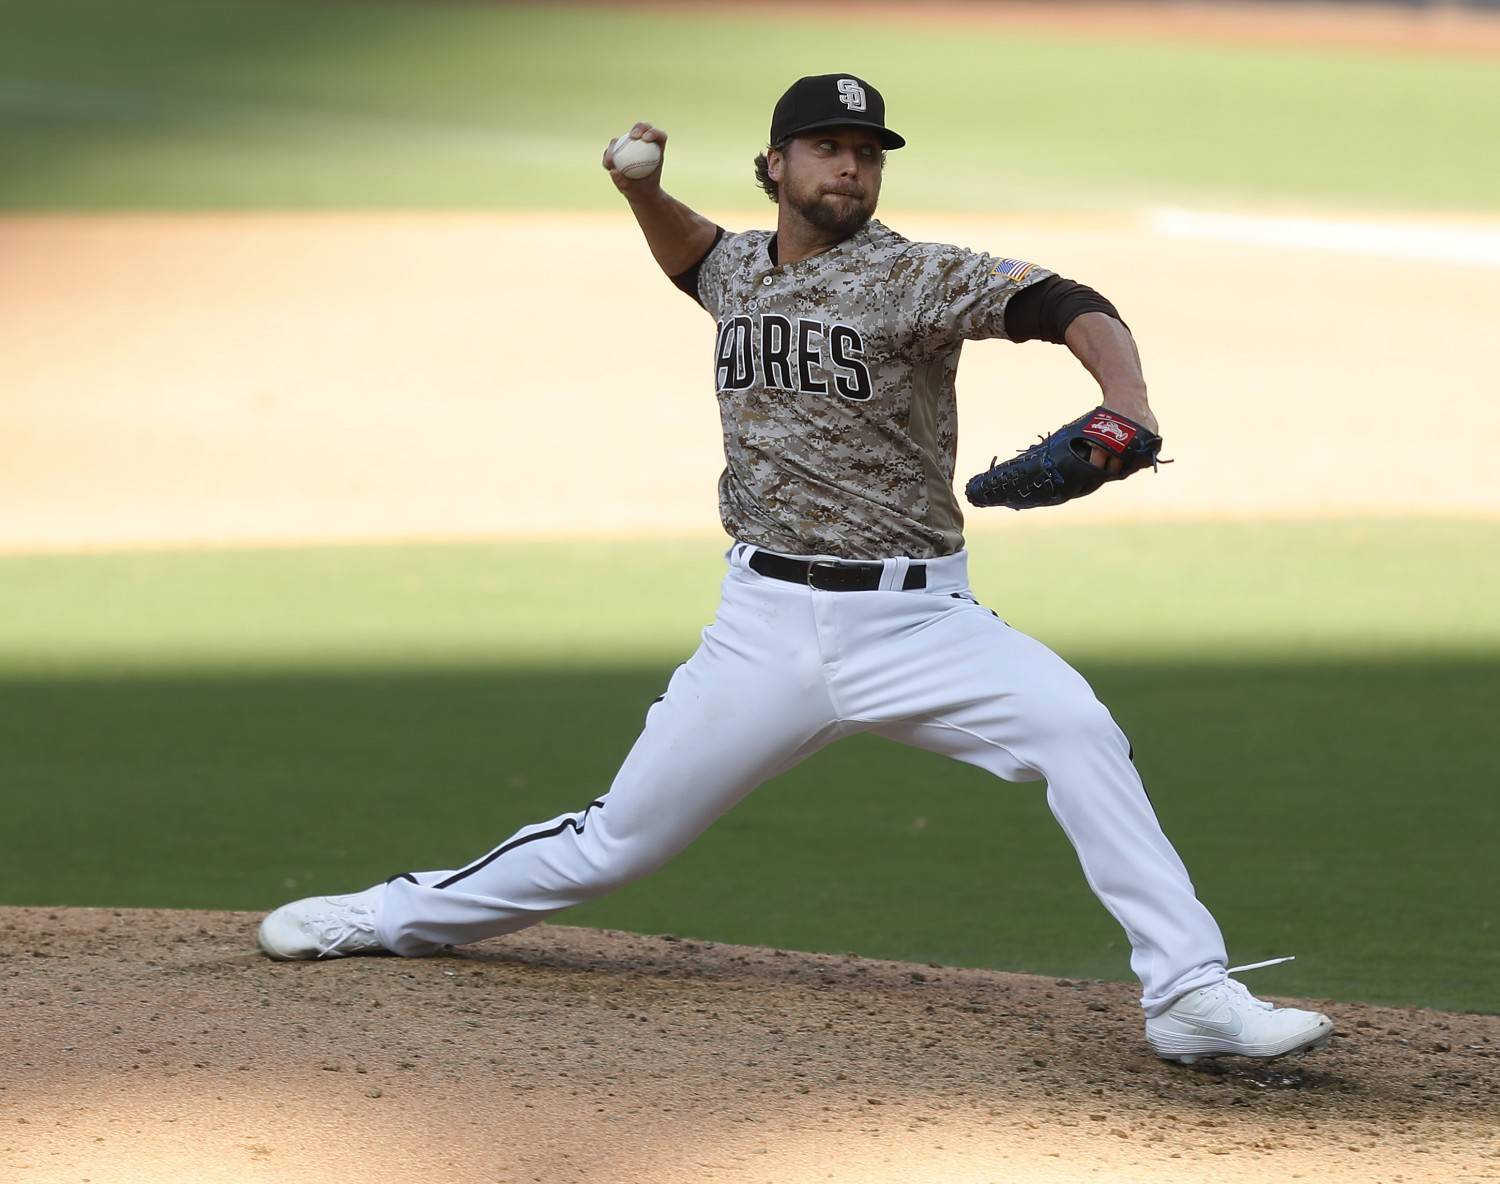 Trevor Rosenthal of the San Diego Padres pitches against the Seattle Mariners at Petco Park on Sunday, Sept.20, 2020 in San Diego, CA. (K.C. Alfred / The San Diego Union-Tribune)